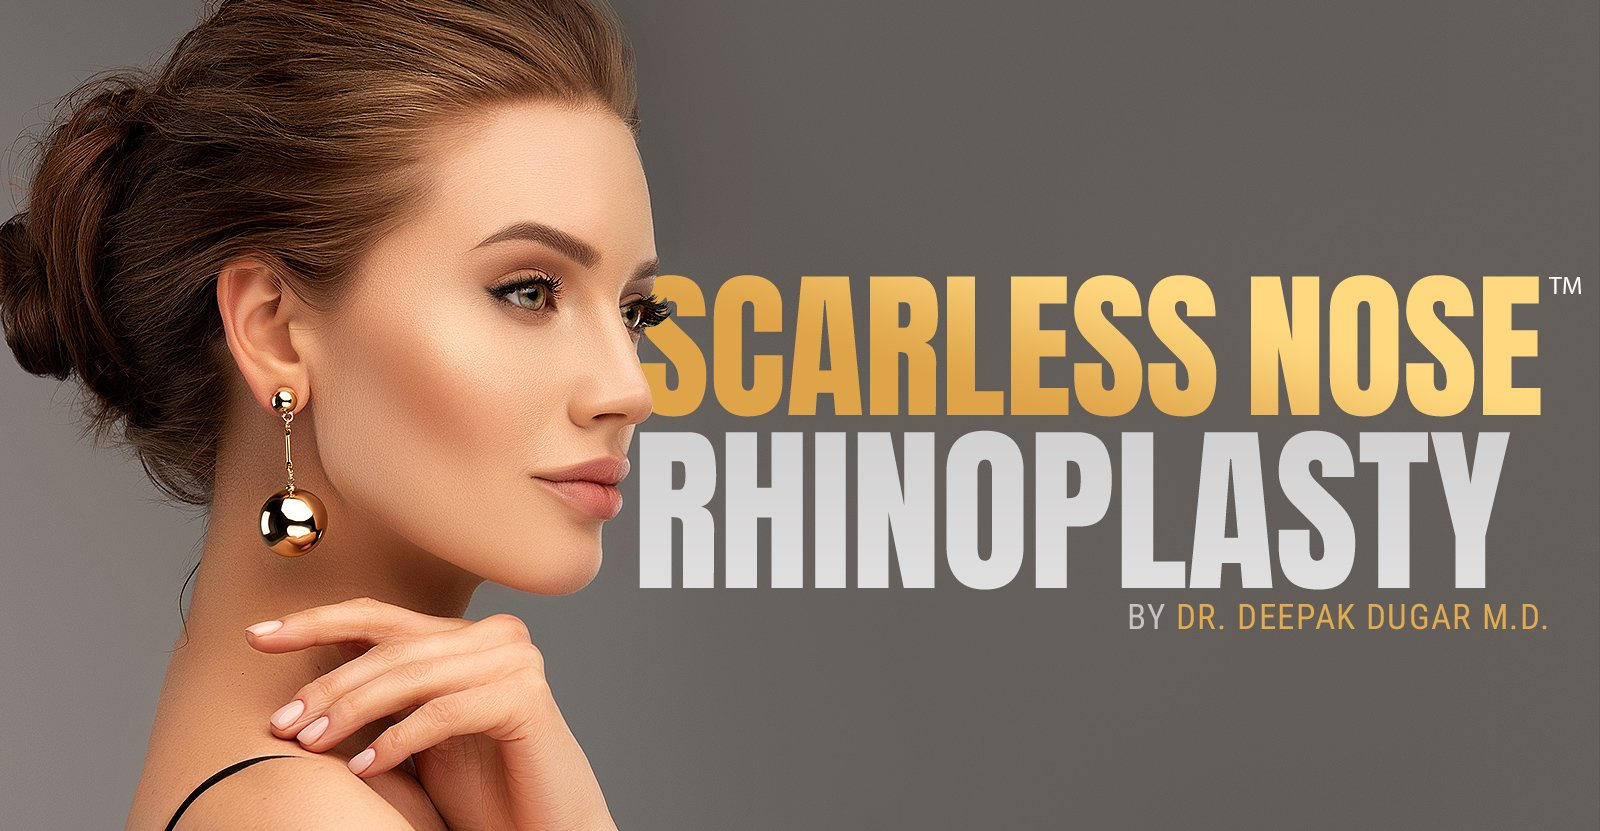 face of an elegant woman facing right beside the text Scarless Nose Rhinoplasty by Dr. Deepak Dugar M.D